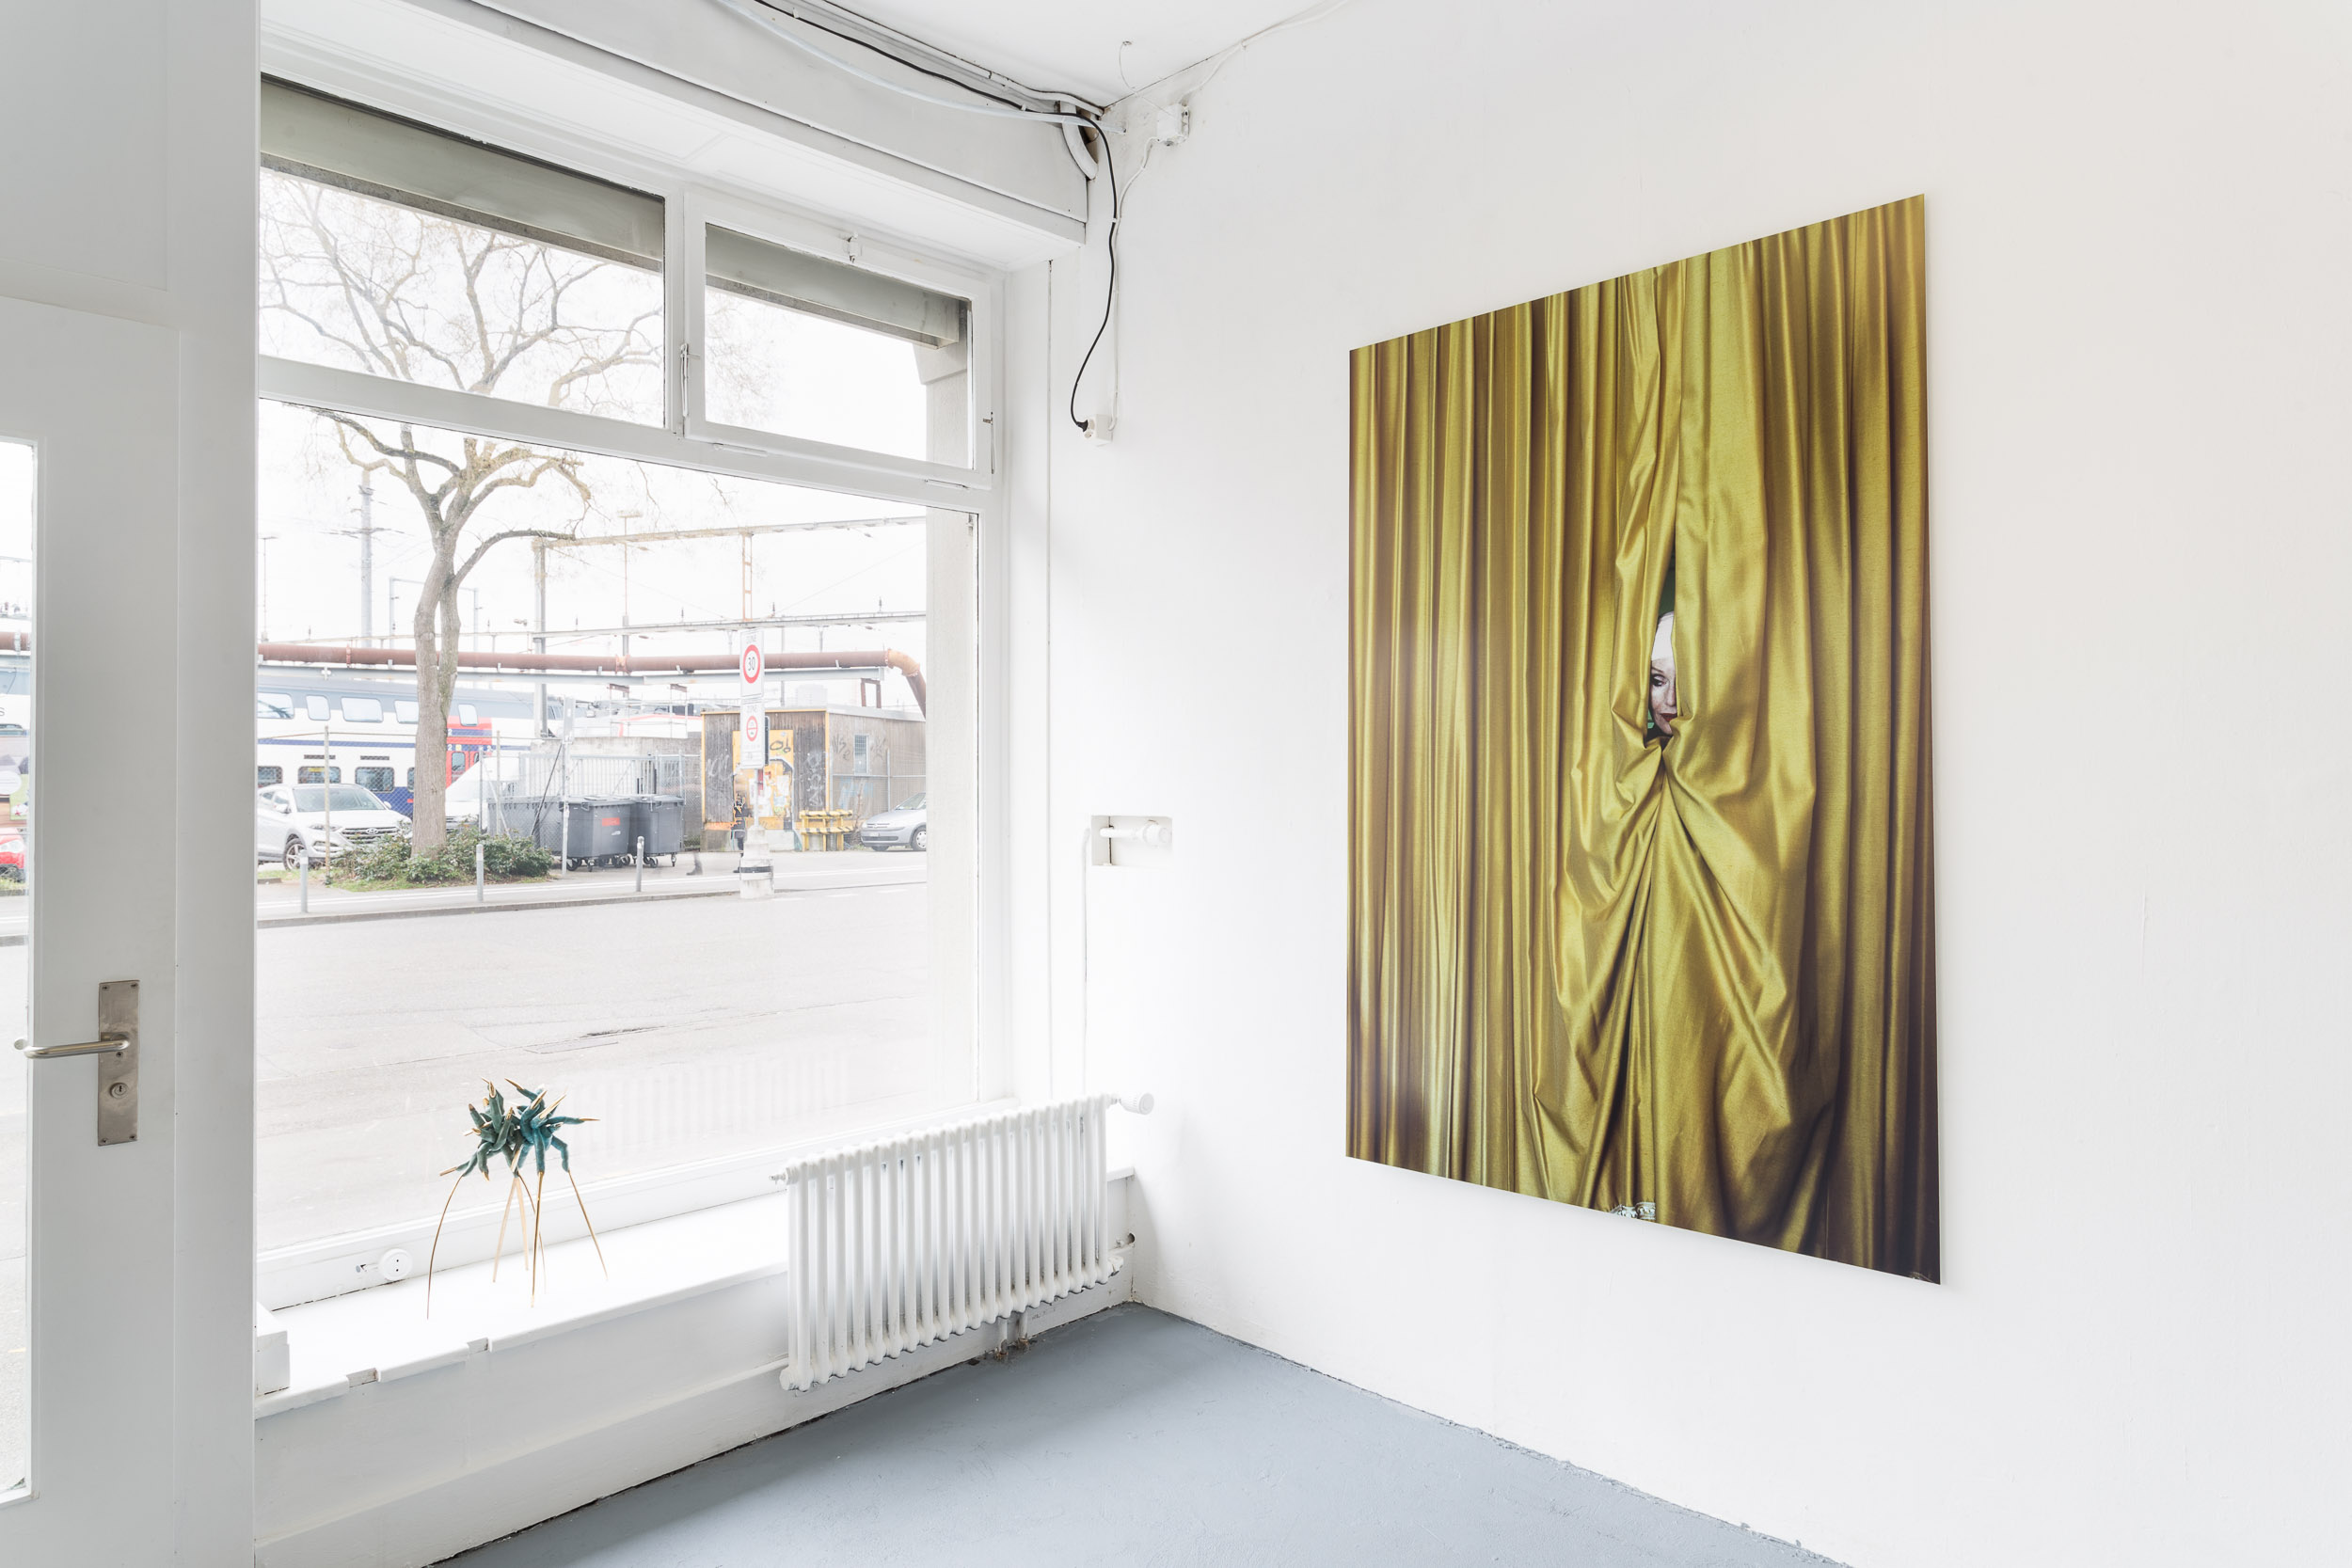 Left: Mélodie Mousset,  Surgeons , 2016, bronze, 30 x 30 x 50cm  Right: Manon, Hotel Dolores, 2008-2011,Photoseries with ca. 150 Photographs, C-Prints on Fuji Crystal Archive Paper mounted on Aluminium, 189 x 126cm  Photo: Kilian Bannwart